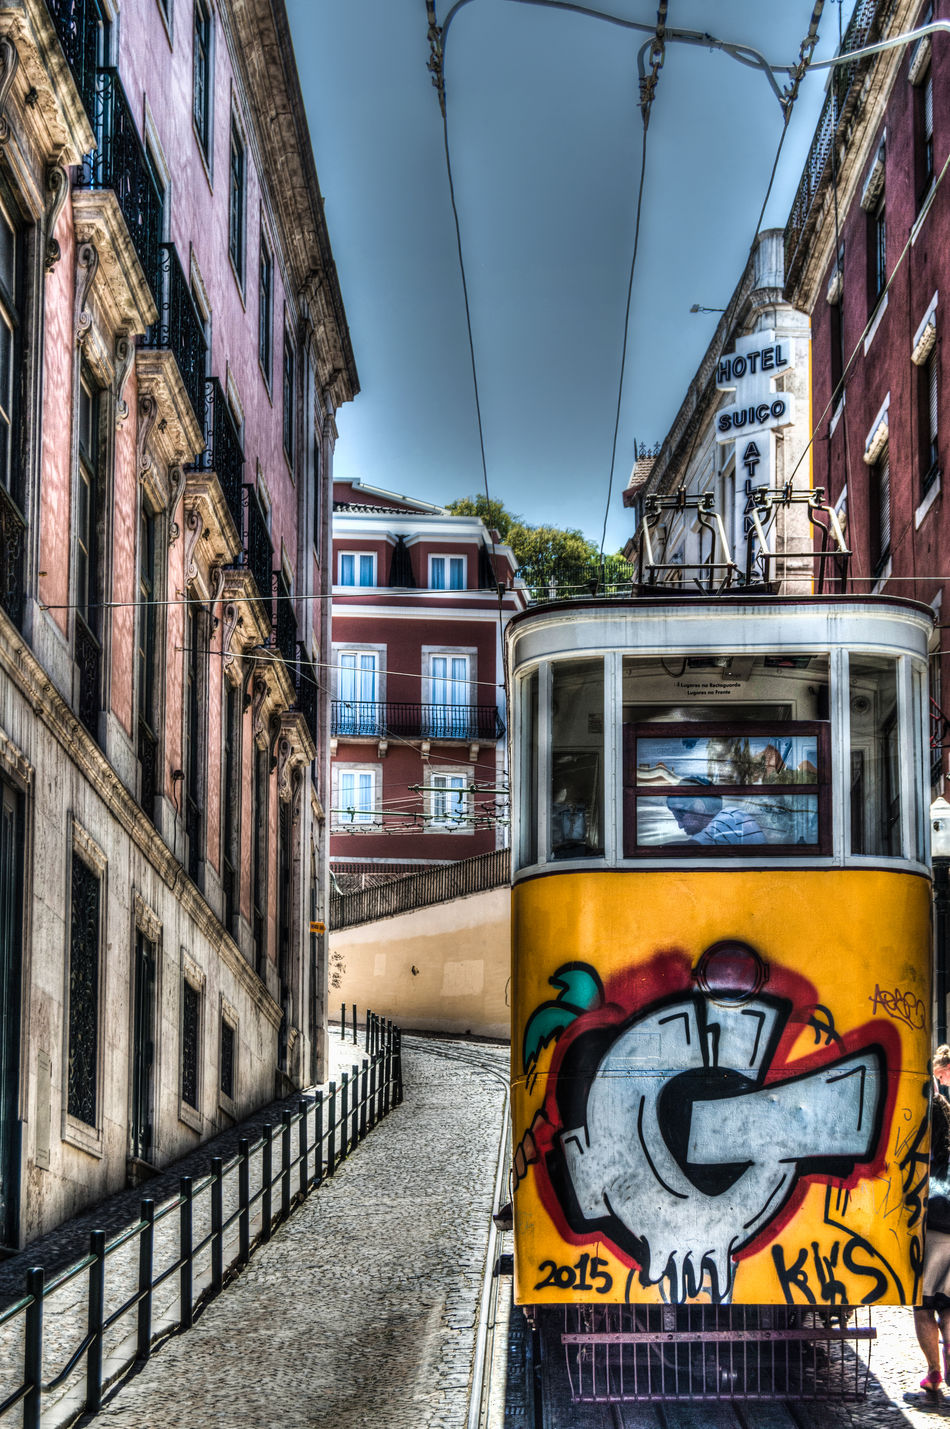 HDR Hdr_Collection Hdrphotography Hdr Edit Hdr_lovers Hdr_gallery HDR Collection Hdr_pics Hdr_captures Hdroftheday Hdr_arts  HDR Streetphotography HDRphoto Hdr Photography HDRInfection Hdrspotters Hdrimage Hdrmania Hdrzone Lisbon Lisboa Lisboa Portugal Lisbonlovers Lisbonne Lisbon, Portugal